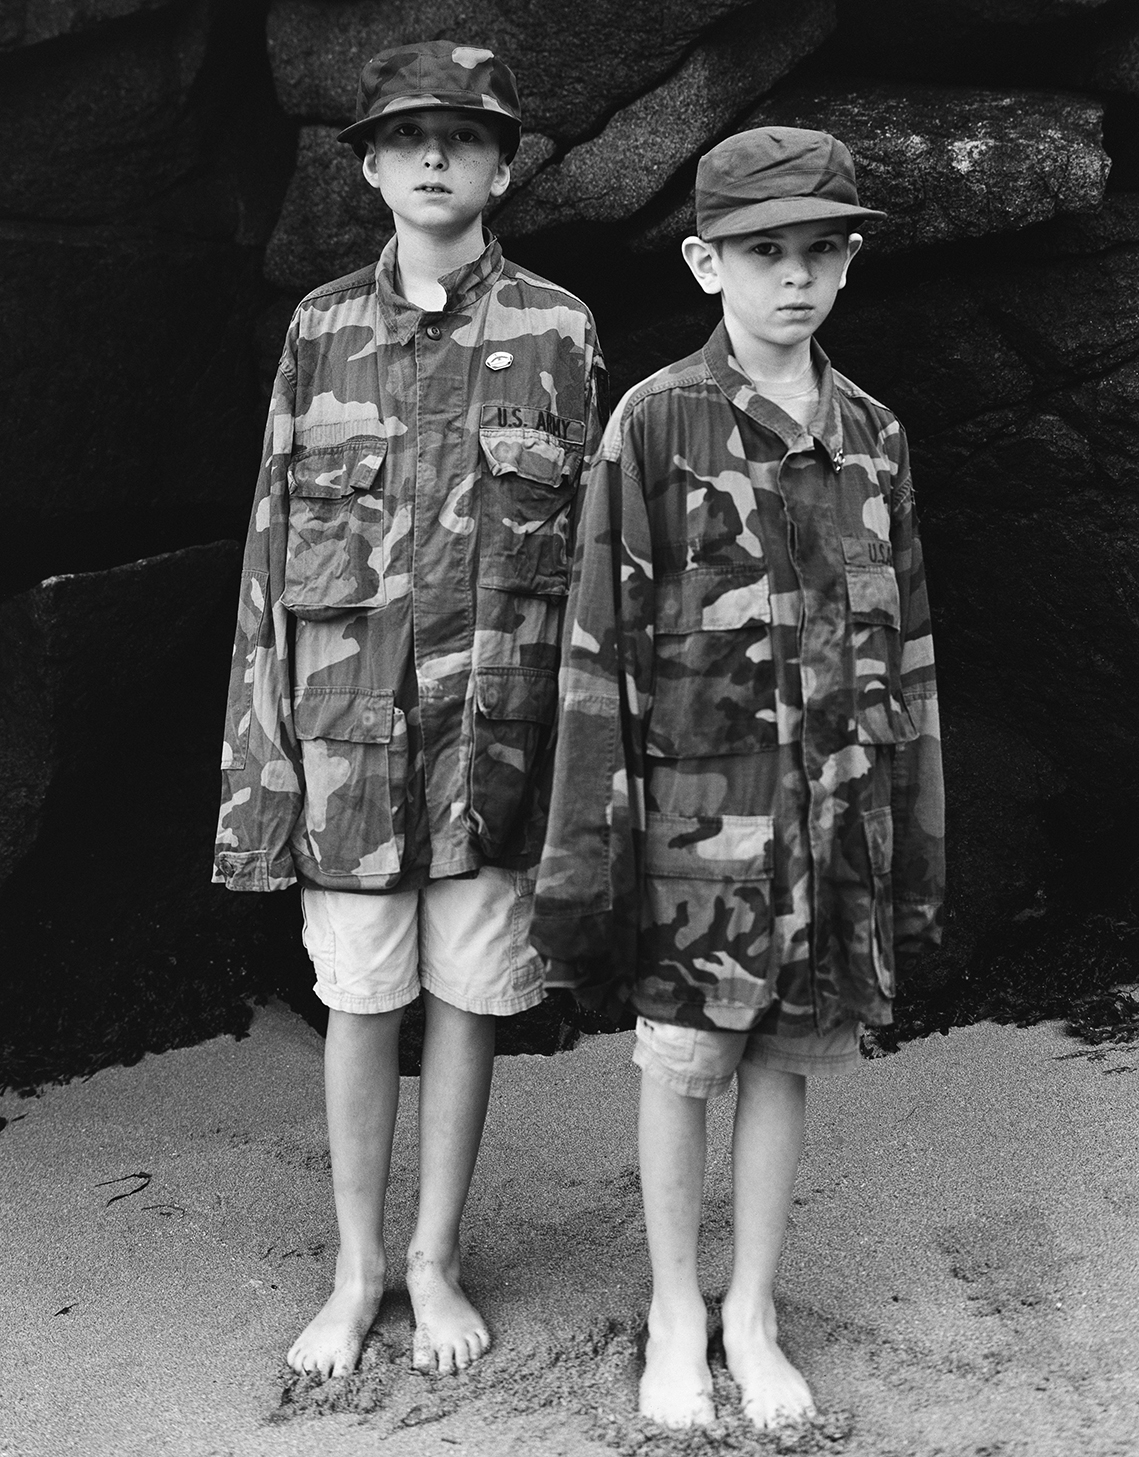 Brothers, Acadia National Park